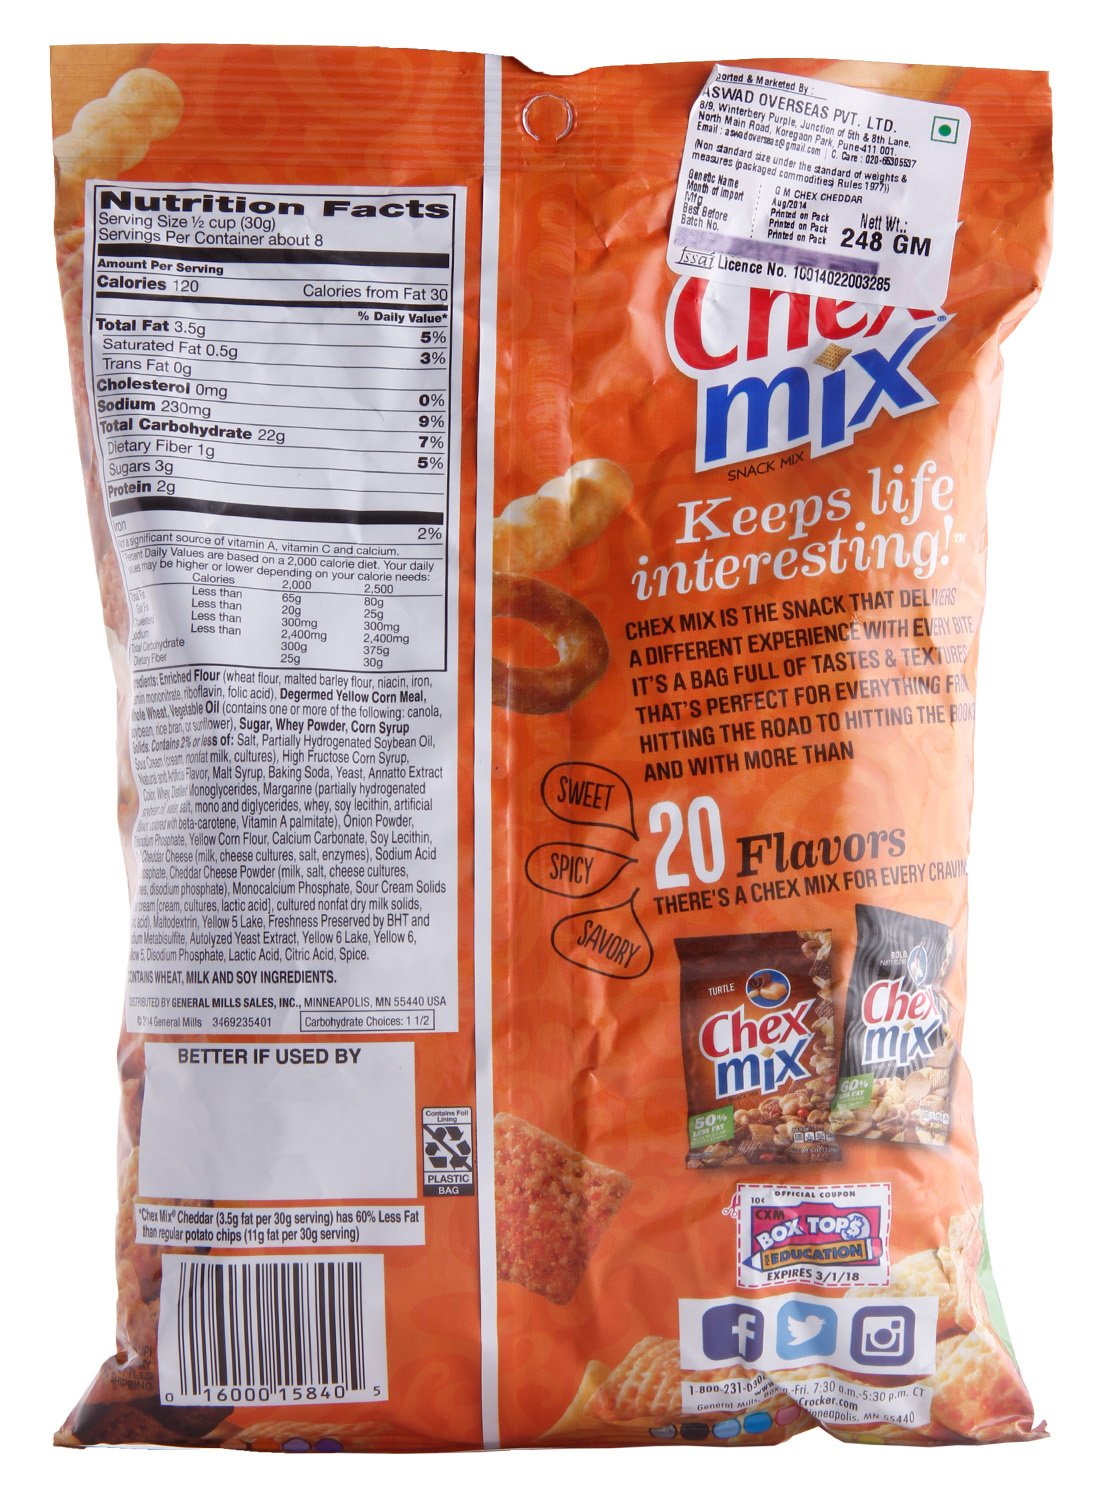 Chex Mix Chex Snack Mix - Cheddar, 8.751-Ounce Bags (Pack of 12) by Chex Mix (Image #3)